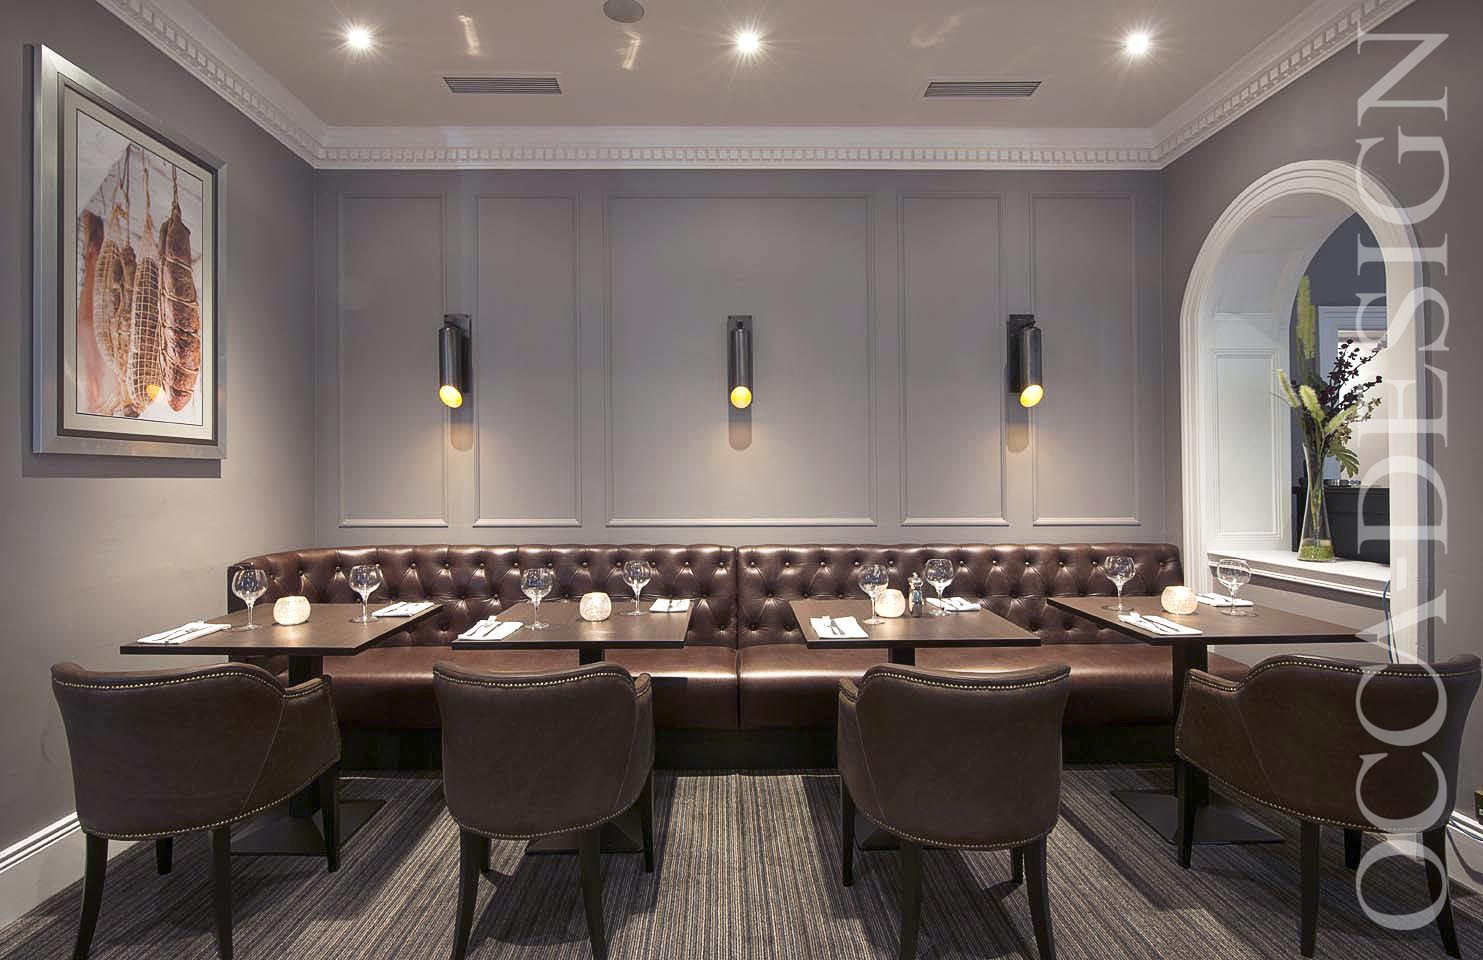 Hotel Interior Design Restaurant Private Dining Room Leather Chairs Contemporary